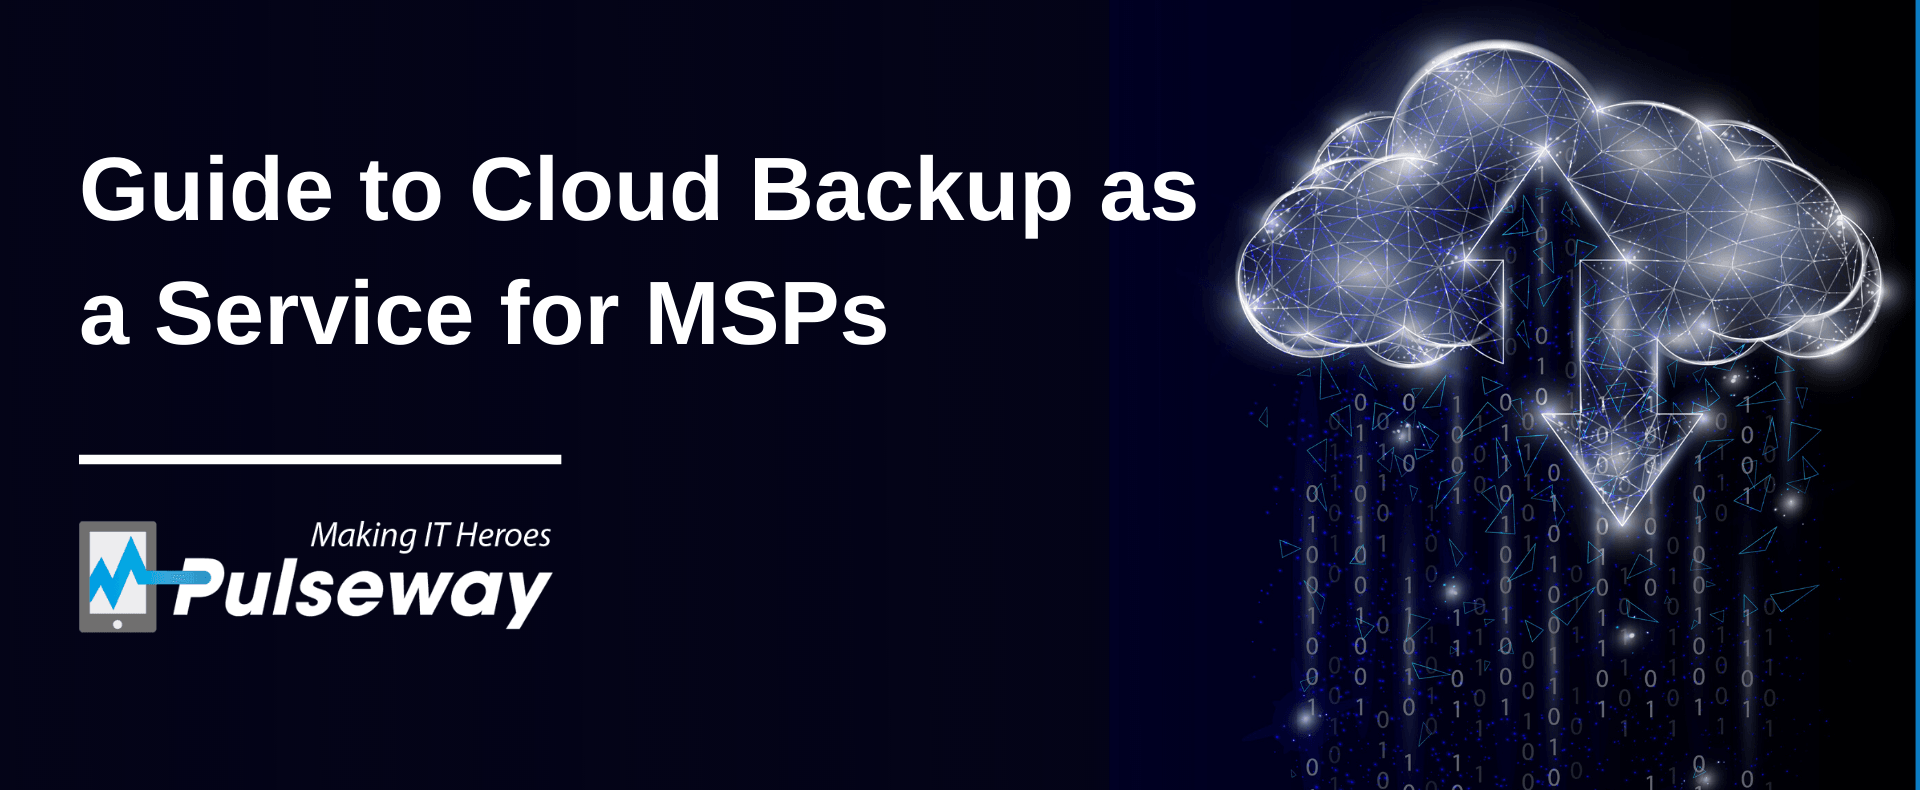 Guide to Cloud Backup as a Service for MSPs